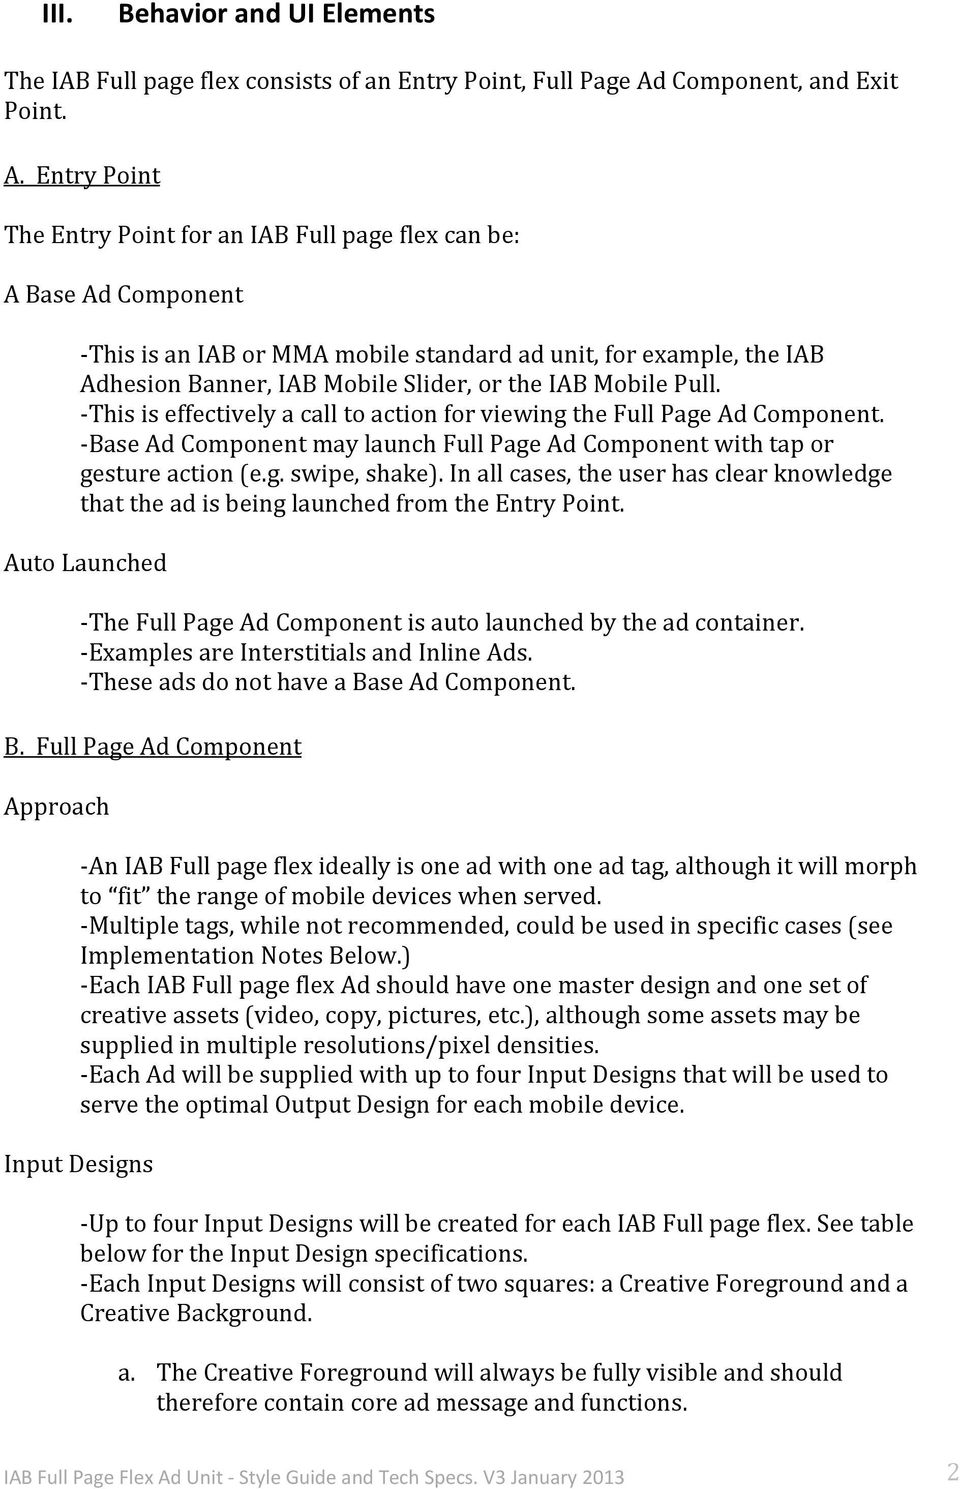 Entry Point The Entry Point for an IAB Full page flex can be: A Base Ad Component -This is an IAB or MMA mobile standard ad unit, for example, the IAB Adhesion Banner, IAB Mobile Slider, or the IAB